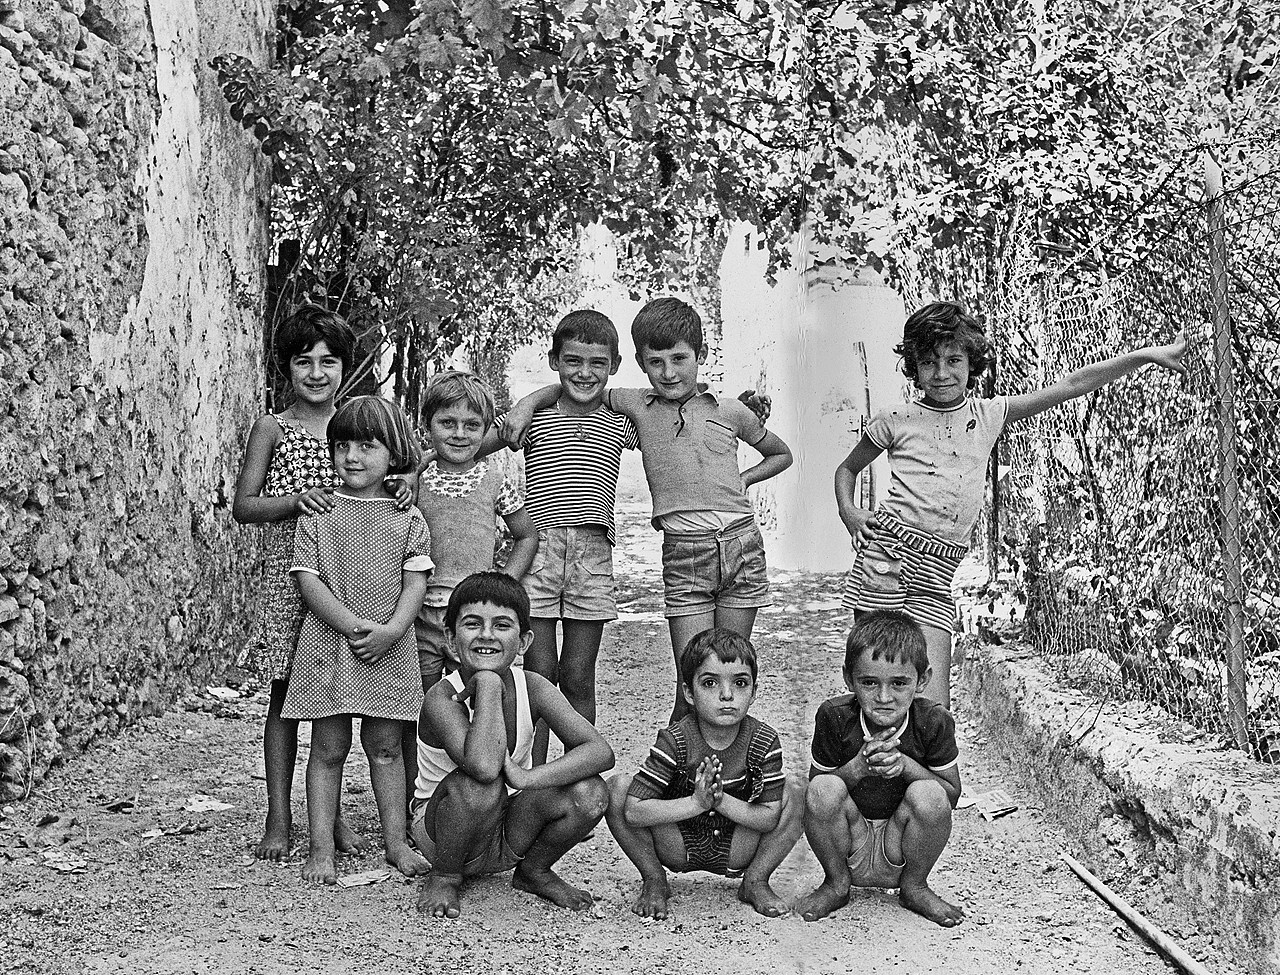 02 Corfu, Greece 1976